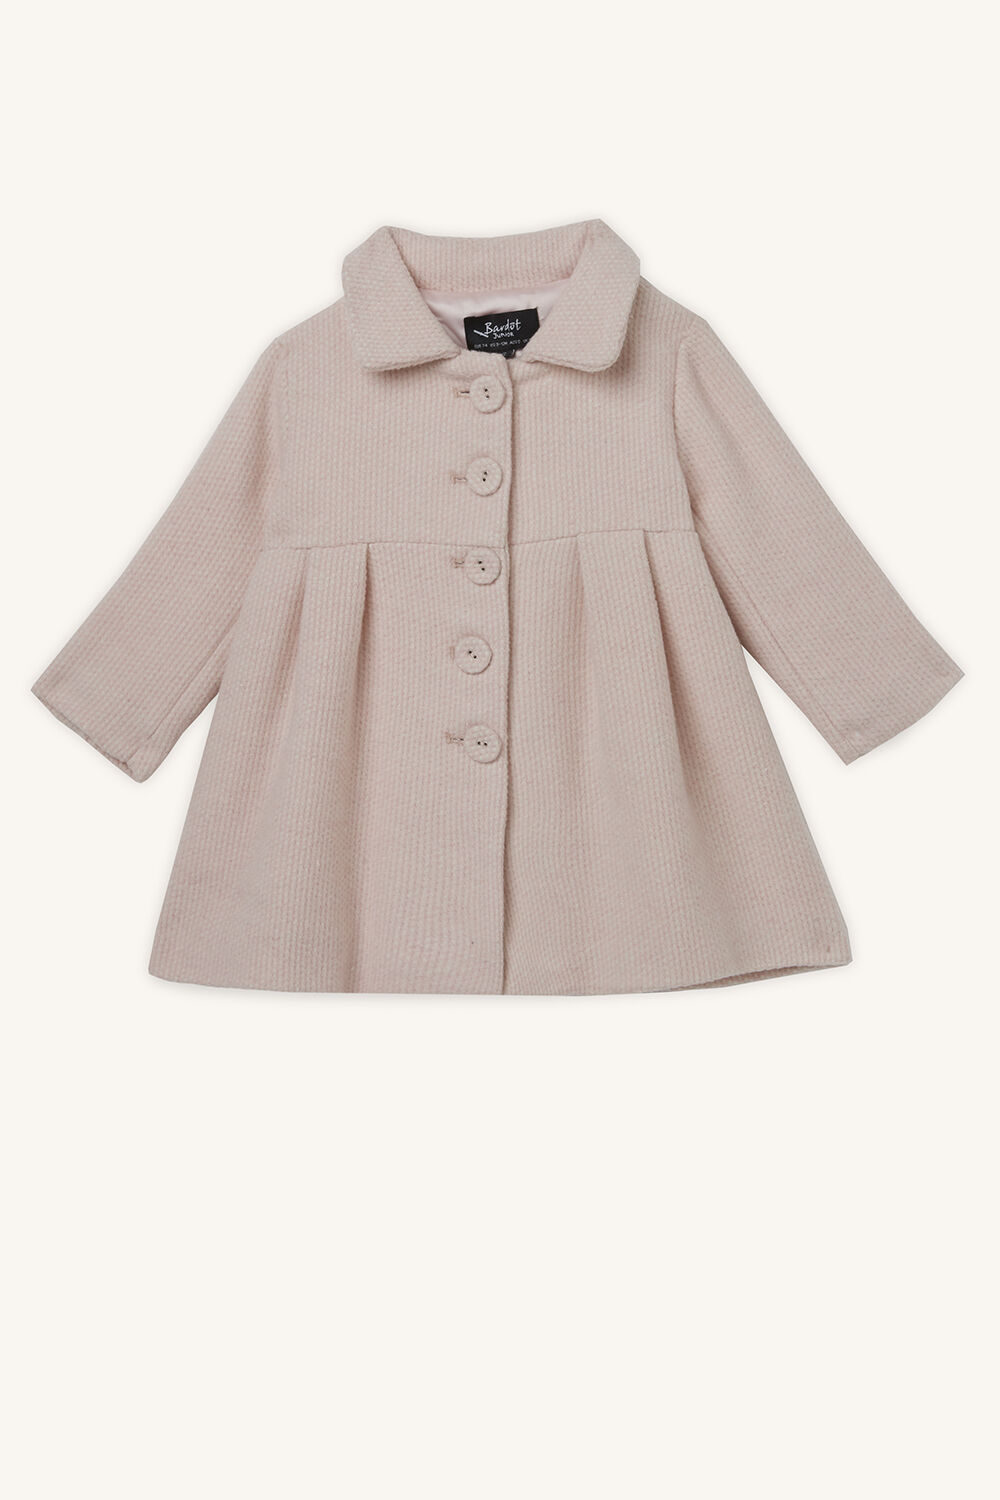 LA BELLE COAT in colour LOTUS